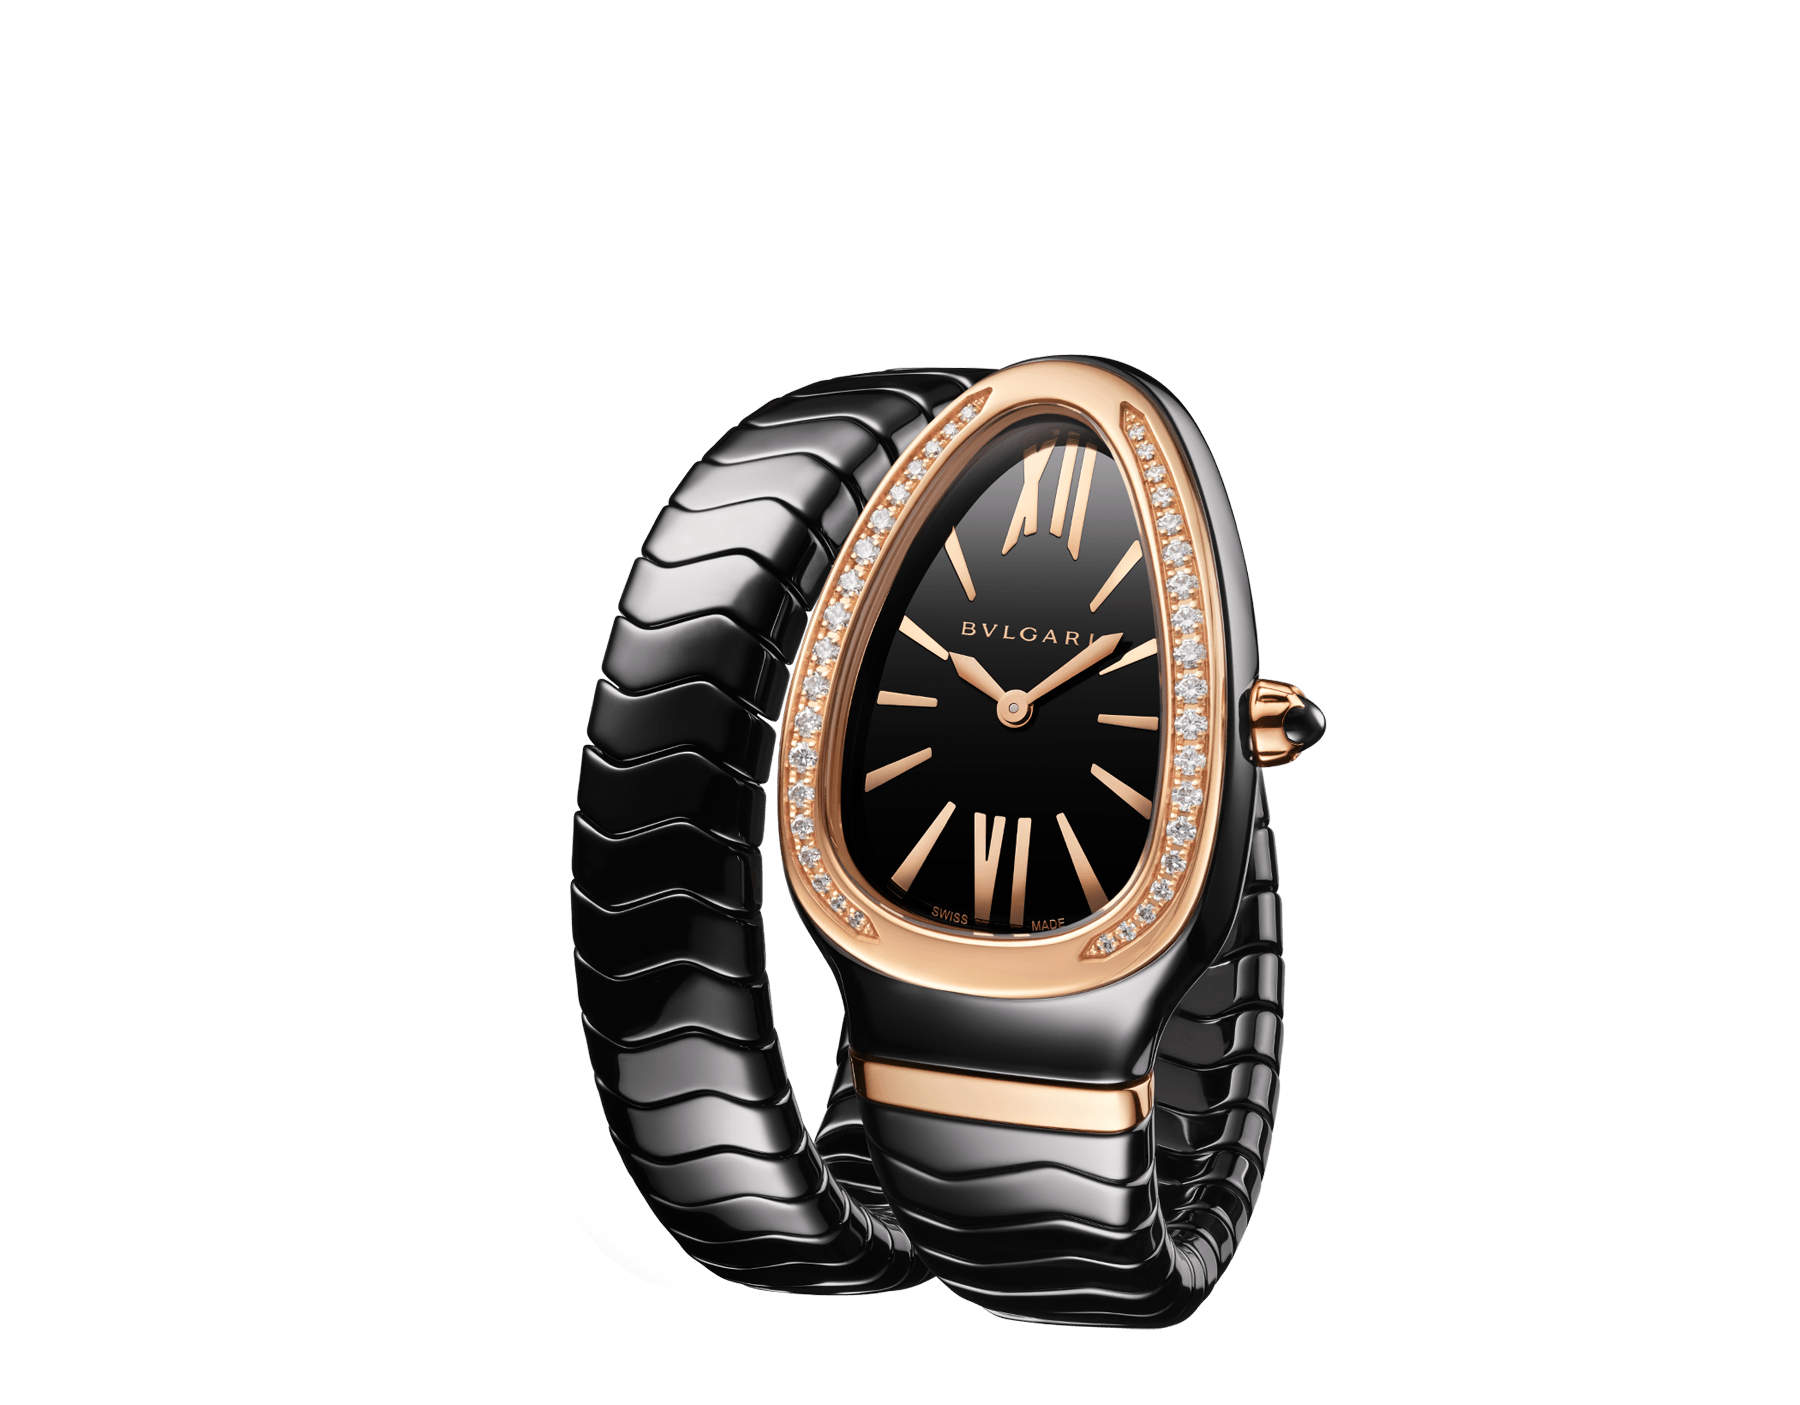 Serpenti Spiga single spiral watch with black ceramic case, 18 kt rose gold bezel set with brilliant cut diamonds, black lacquered dial, black ceramic bracelet with 18 kt rose gold elements. 102532 image 2